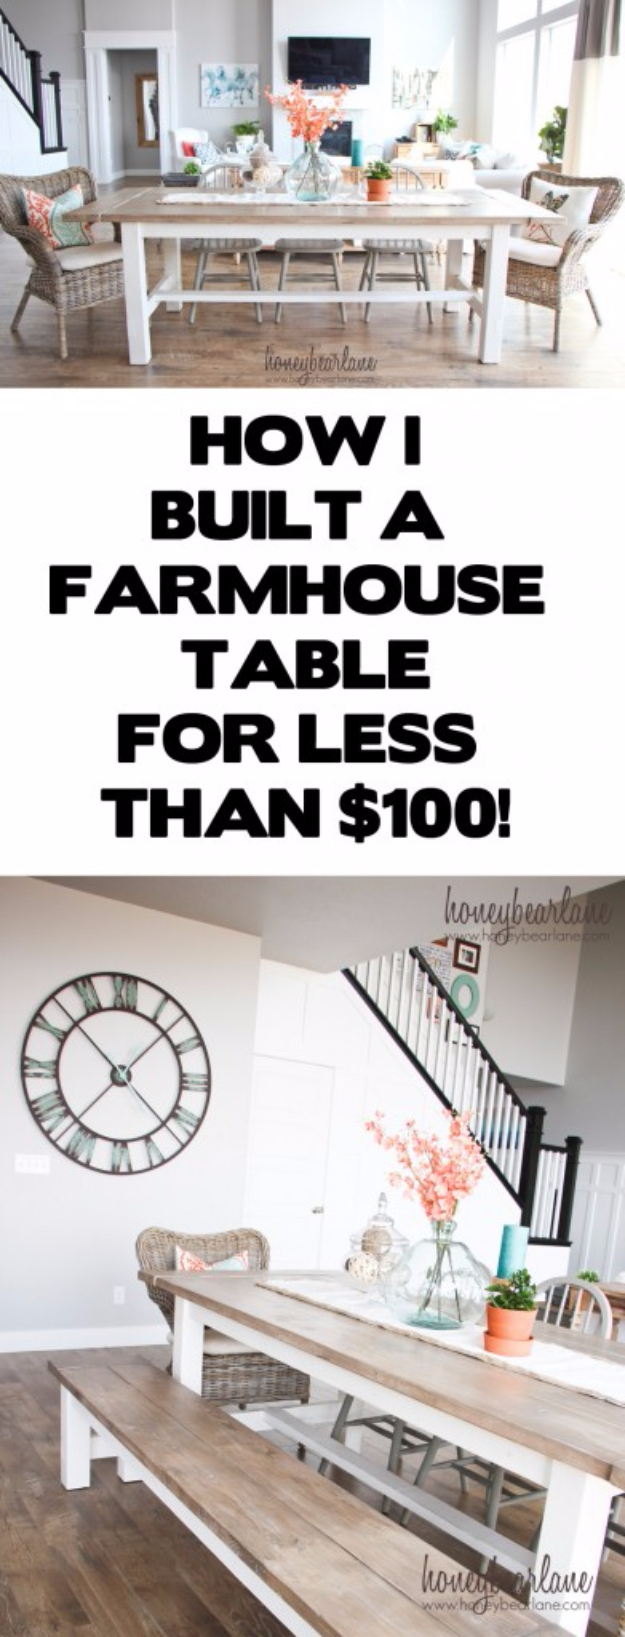 DIY Dining Room Table Projects - DIY Farmhouse Table For $100 - Creative Do It Yourself Tables and Ideas You Can Make For Your Kitchen or Dining Area. Easy Step by Step Tutorials that Are Perfect For Those On A Budget #diyfurniture #diningroom